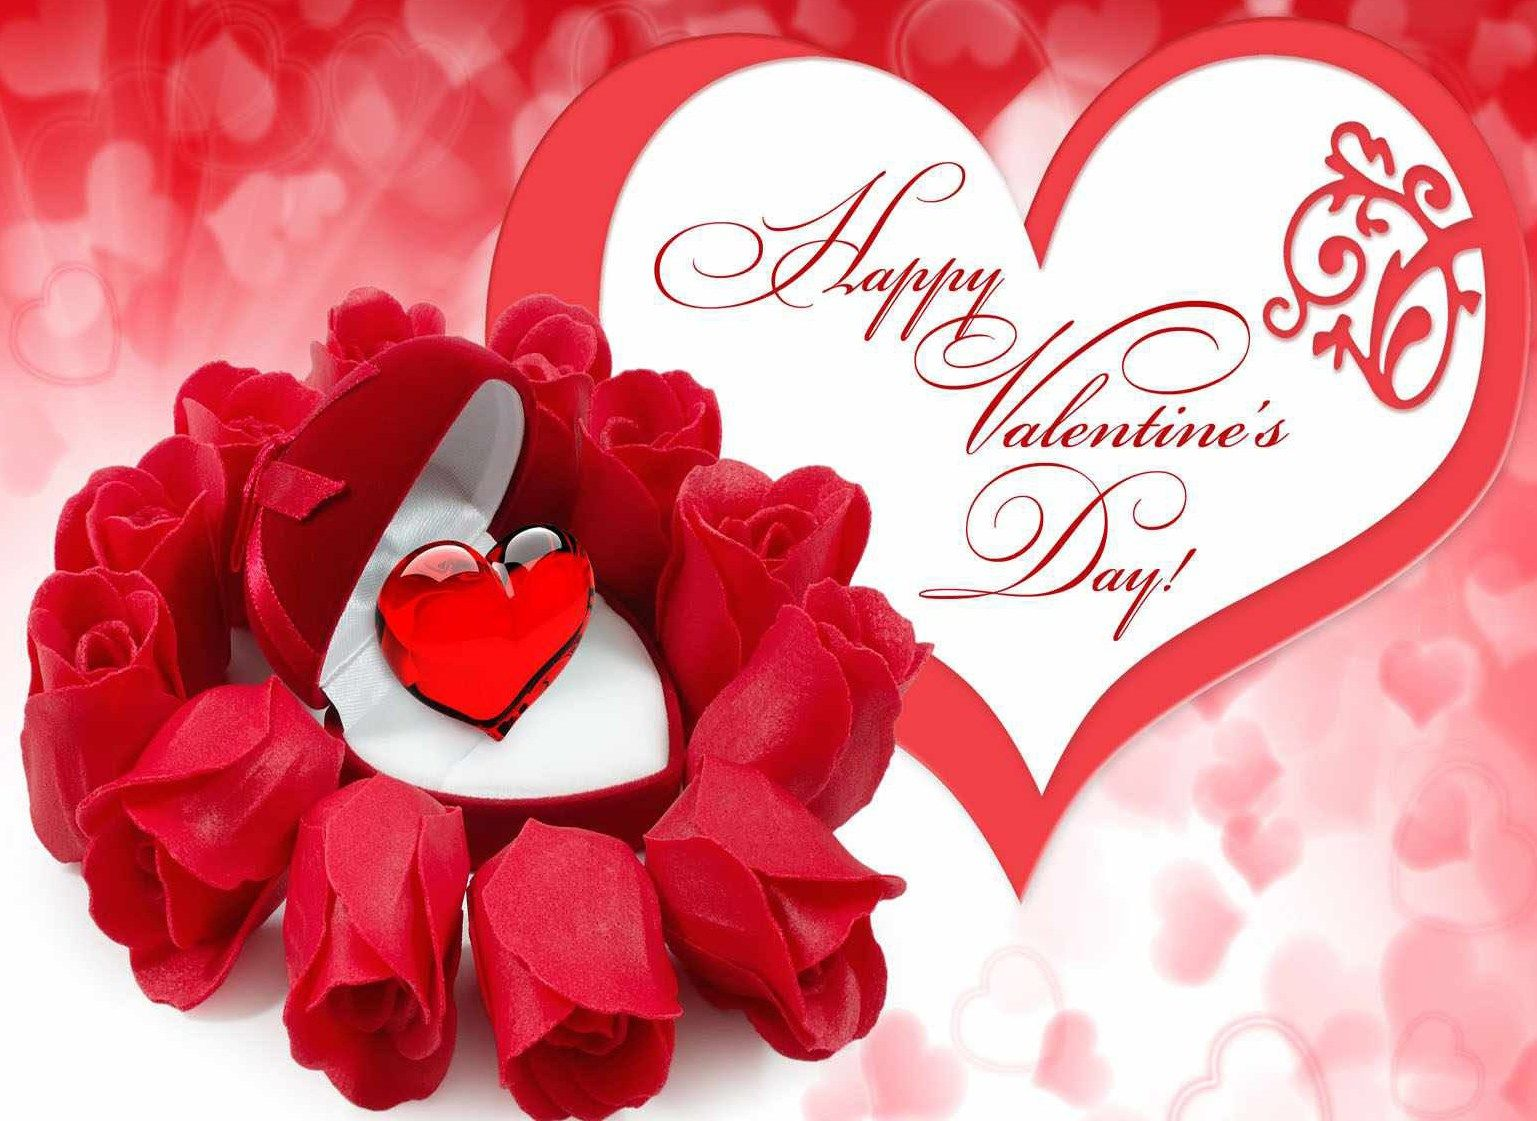 Pin by manana tevdoradze on hearts valentines day pinterest free valentine day greeting card sayings valentines day greeting cards for himboyfriend pictures and photos m4hsunfo